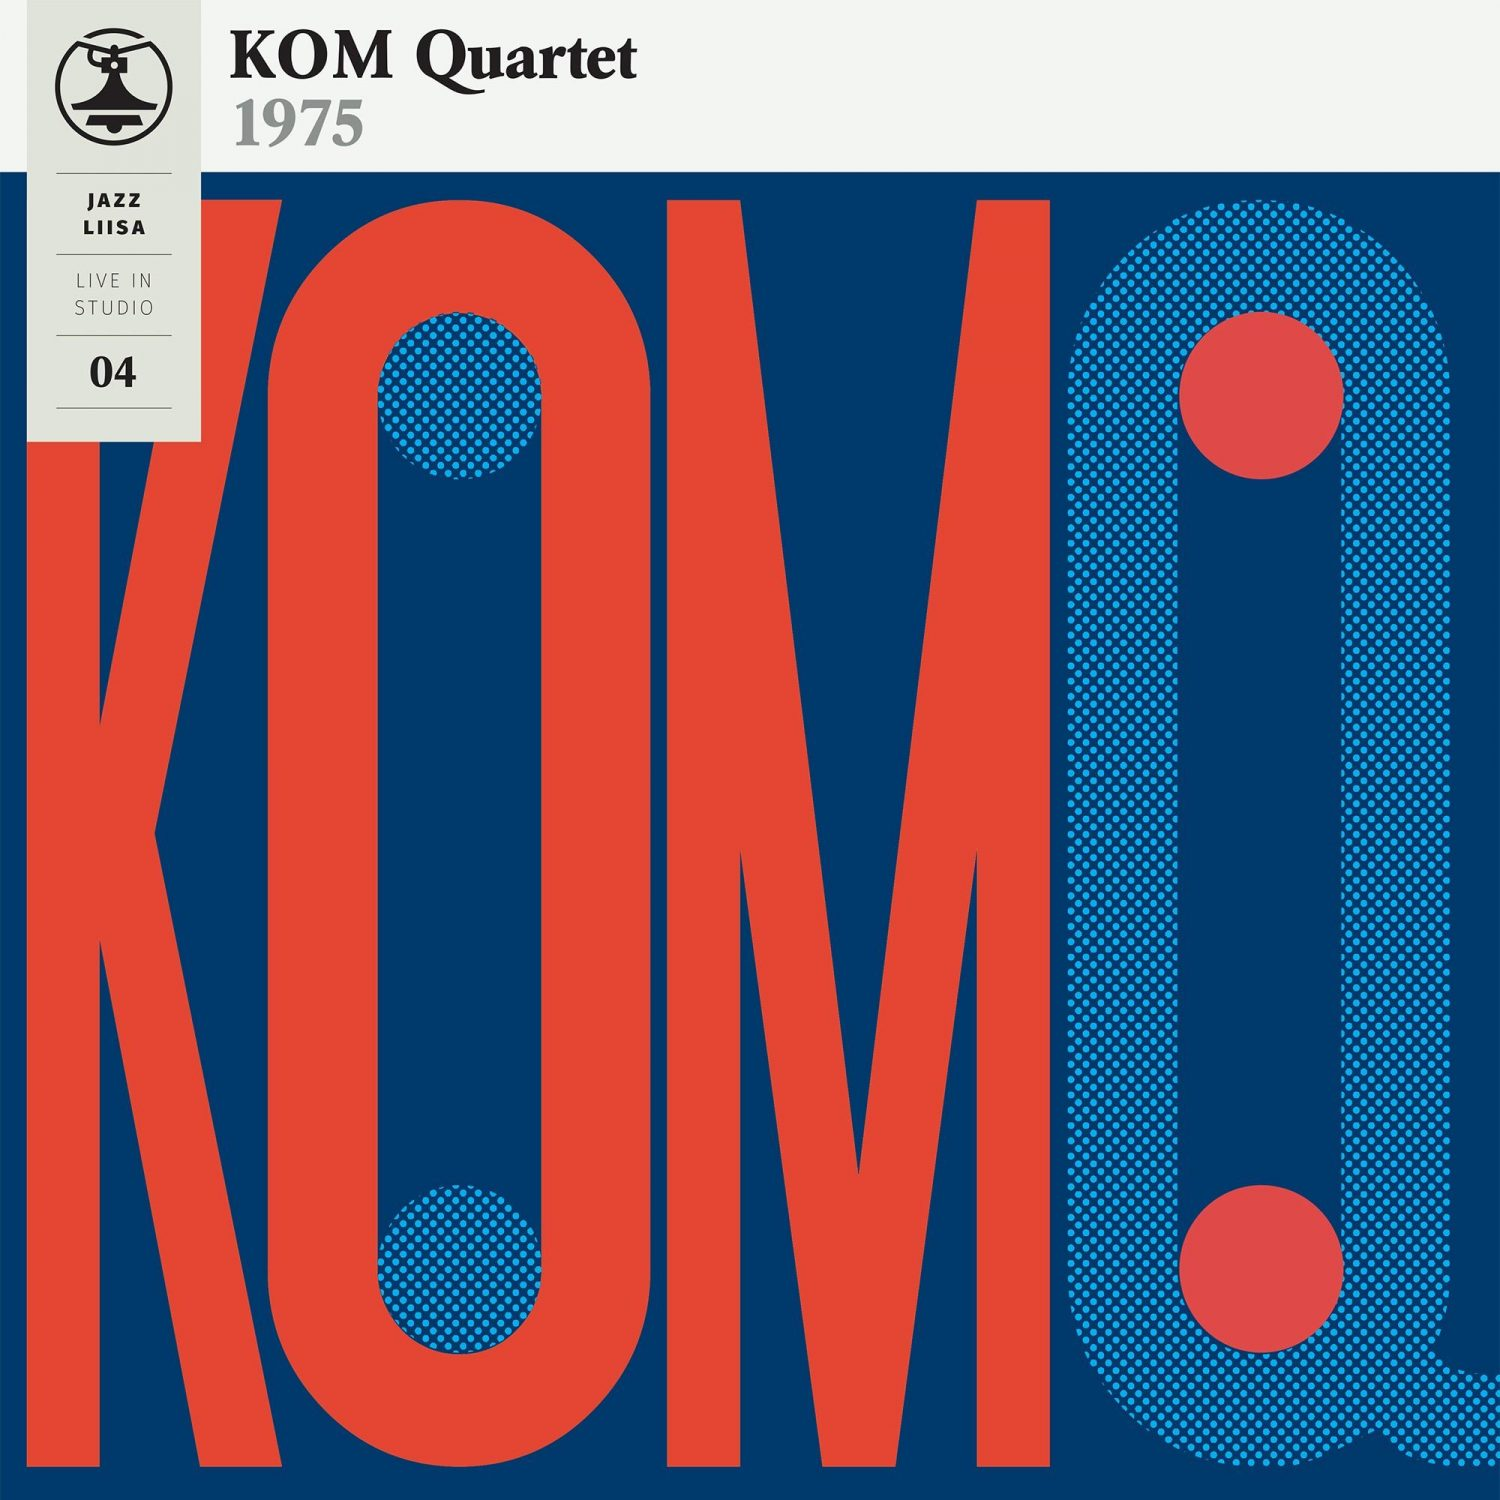 kom quartet - Jazz Liisa 04 (LP)